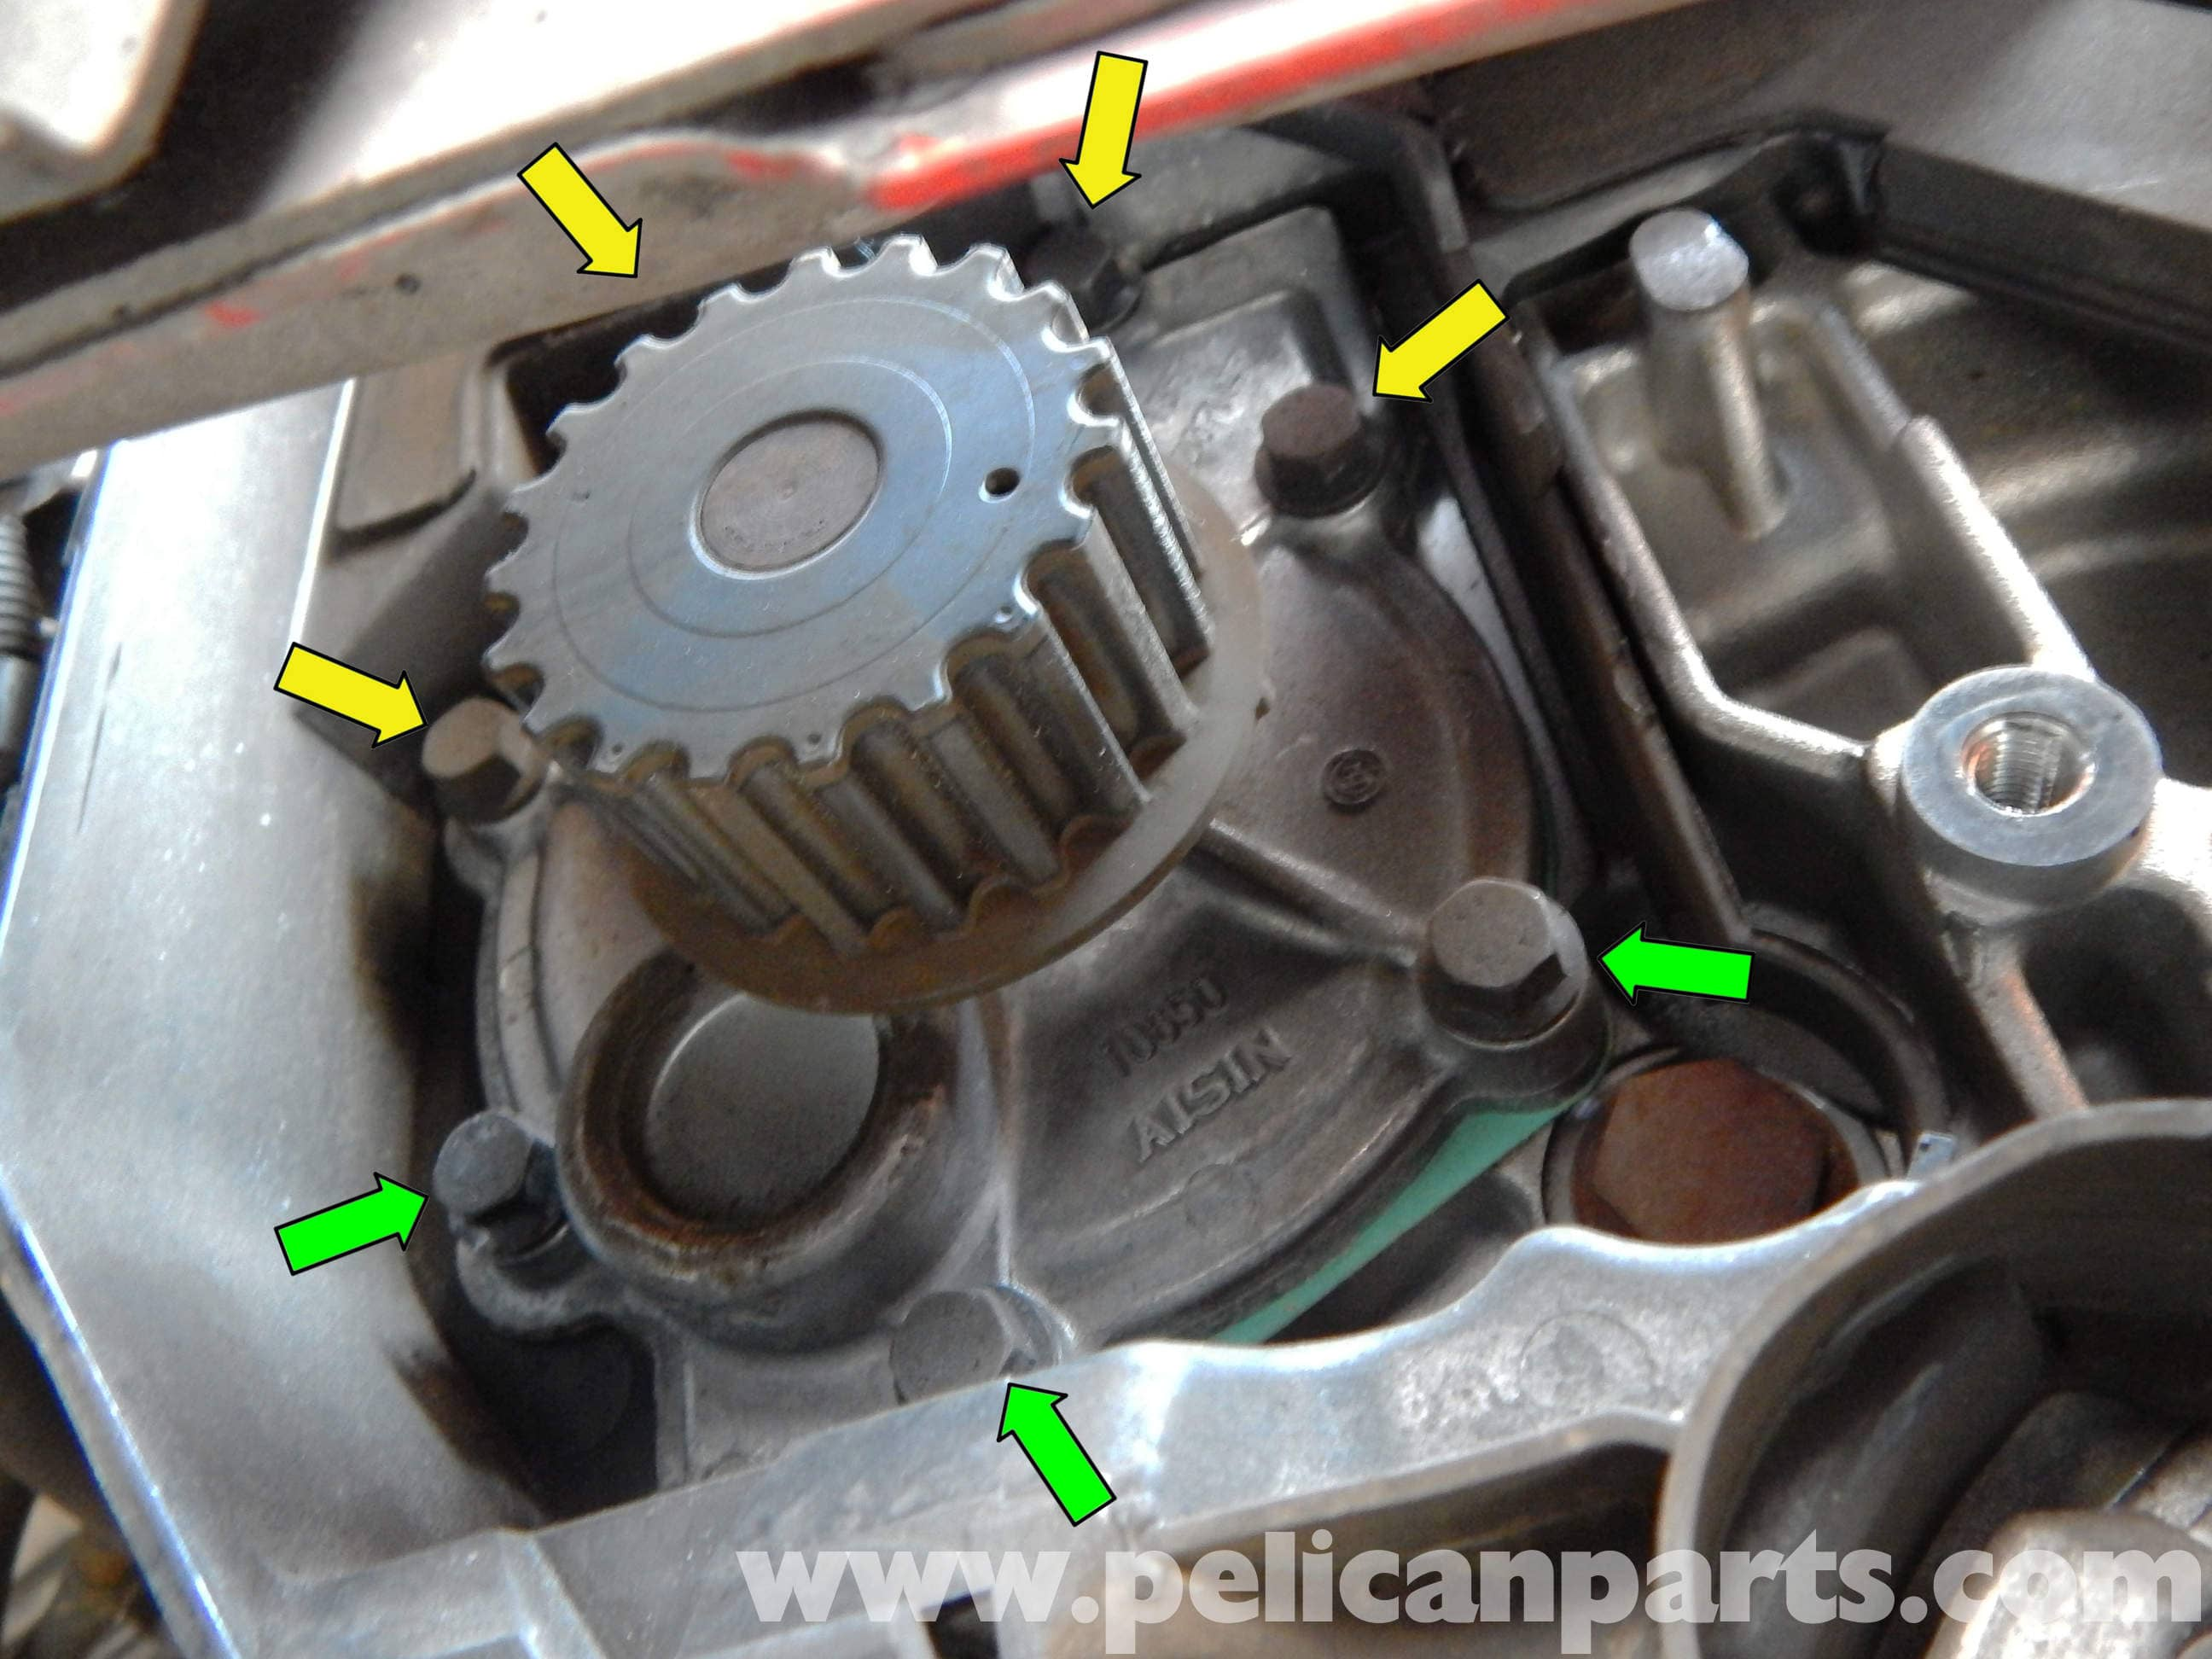 Volvo C30 Water Pump Replacement (2007-2013) - Pelican Parts DIY